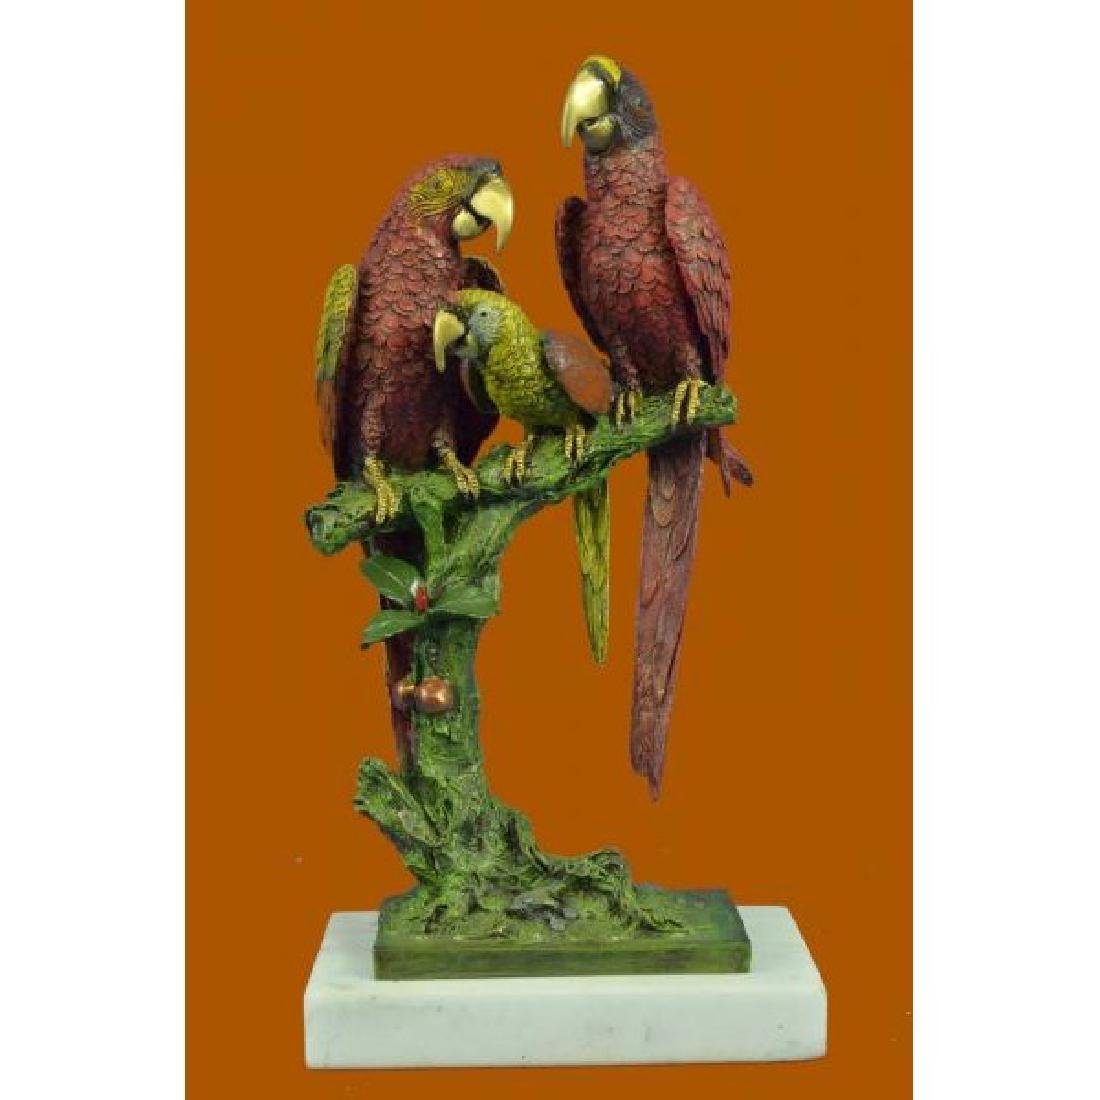 Handcrafted Brazilian Parrot Family Bronze Sculpture on